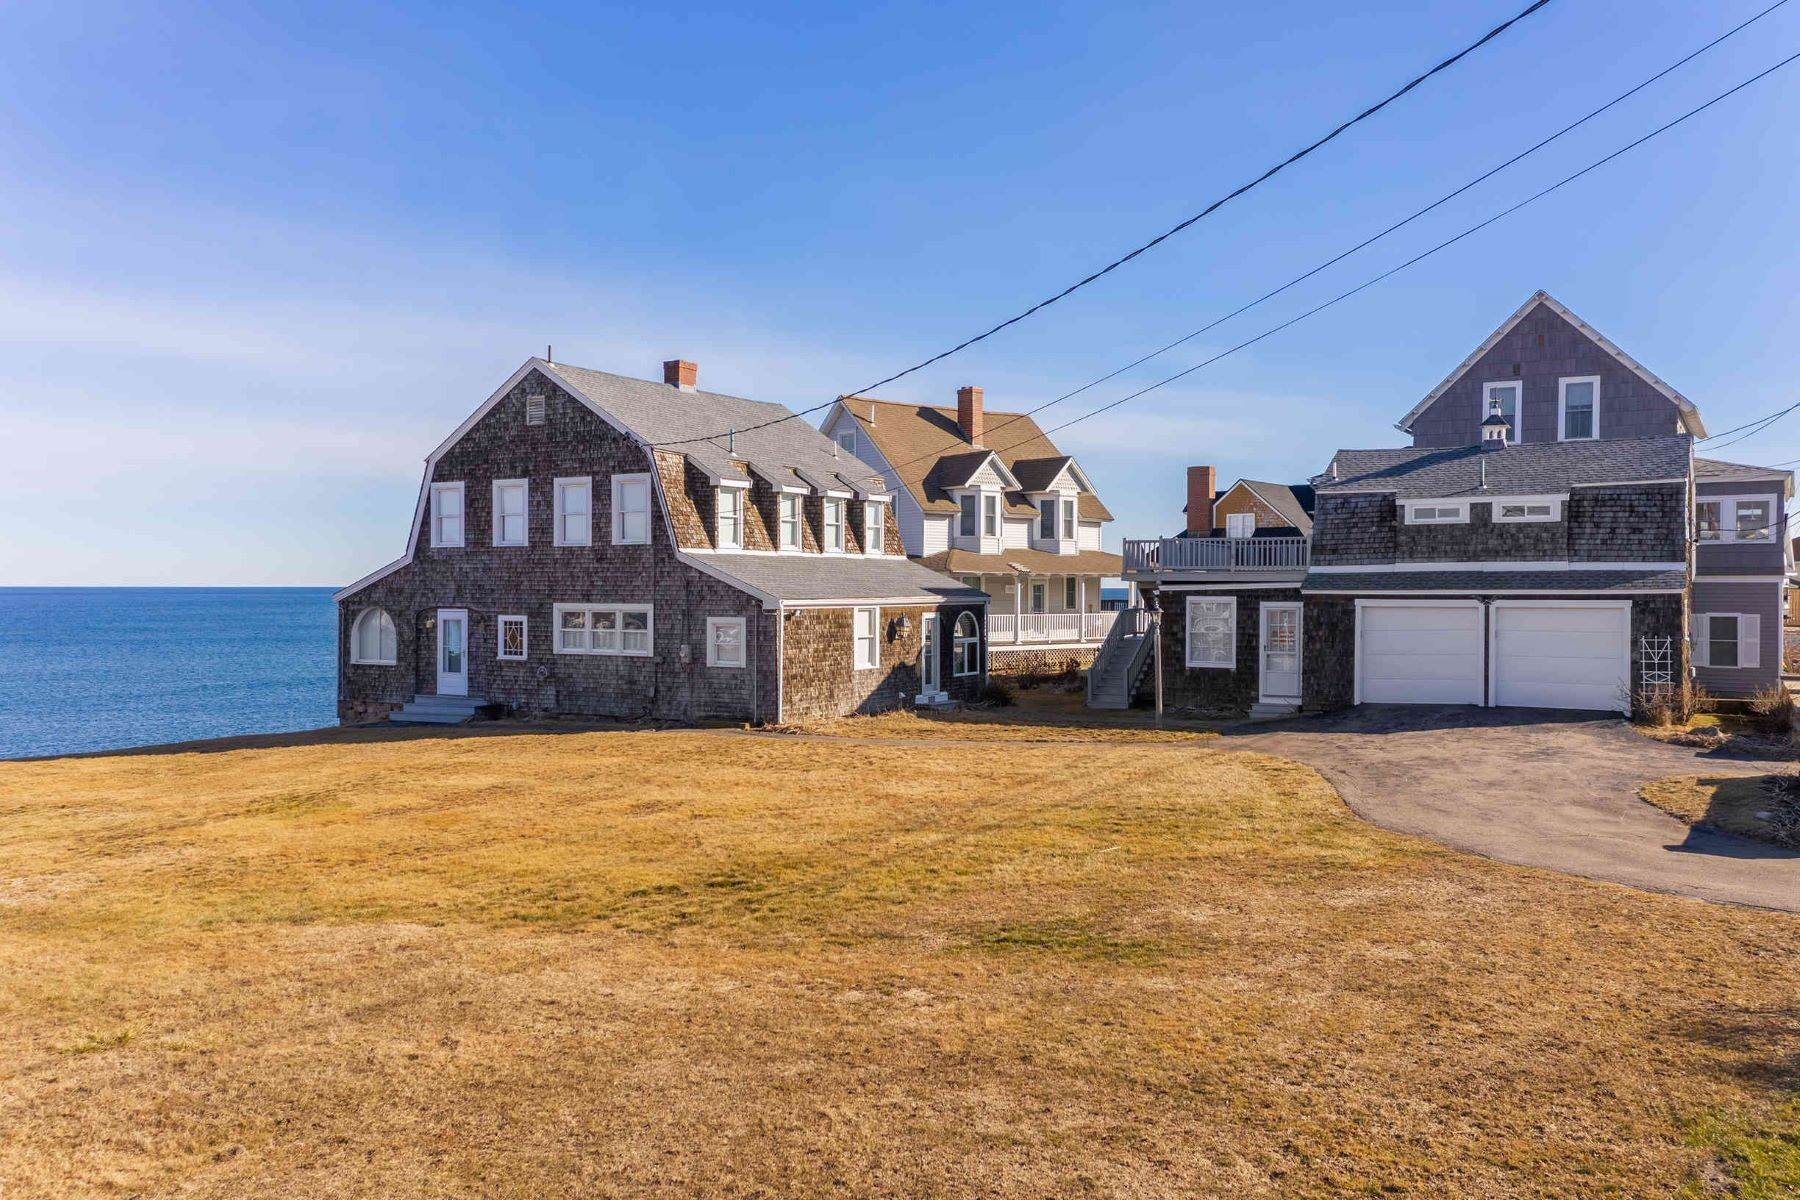 Single Family Homes for Sale at Waterfront Grambrel on Nubble Lighthouse Peninsula in York 124 Broadway, York, ME 03909